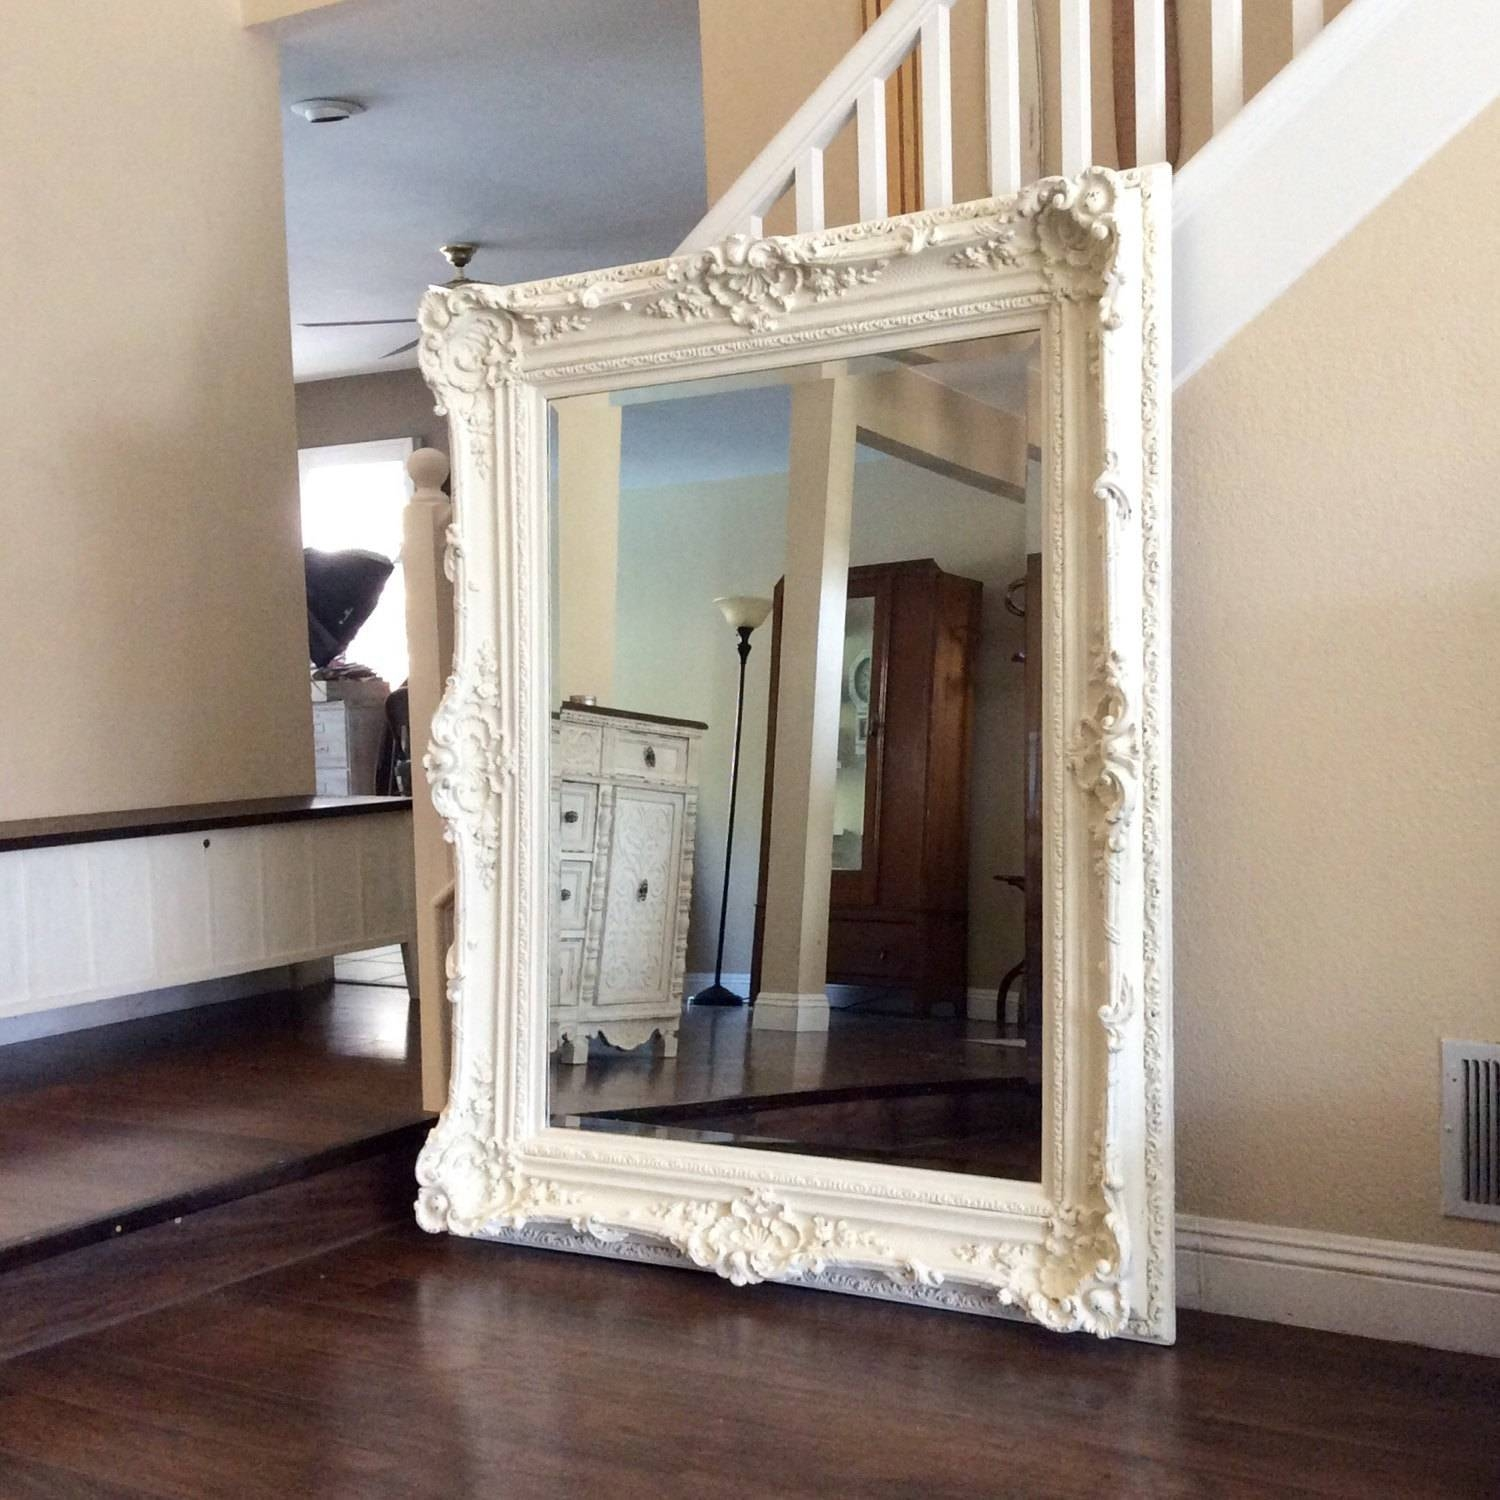 Ornate Mirror For Sale, Large White Mirror, Shabby Chic Wall pertaining to White Large Shabby Chic Mirrors (Image 10 of 15)